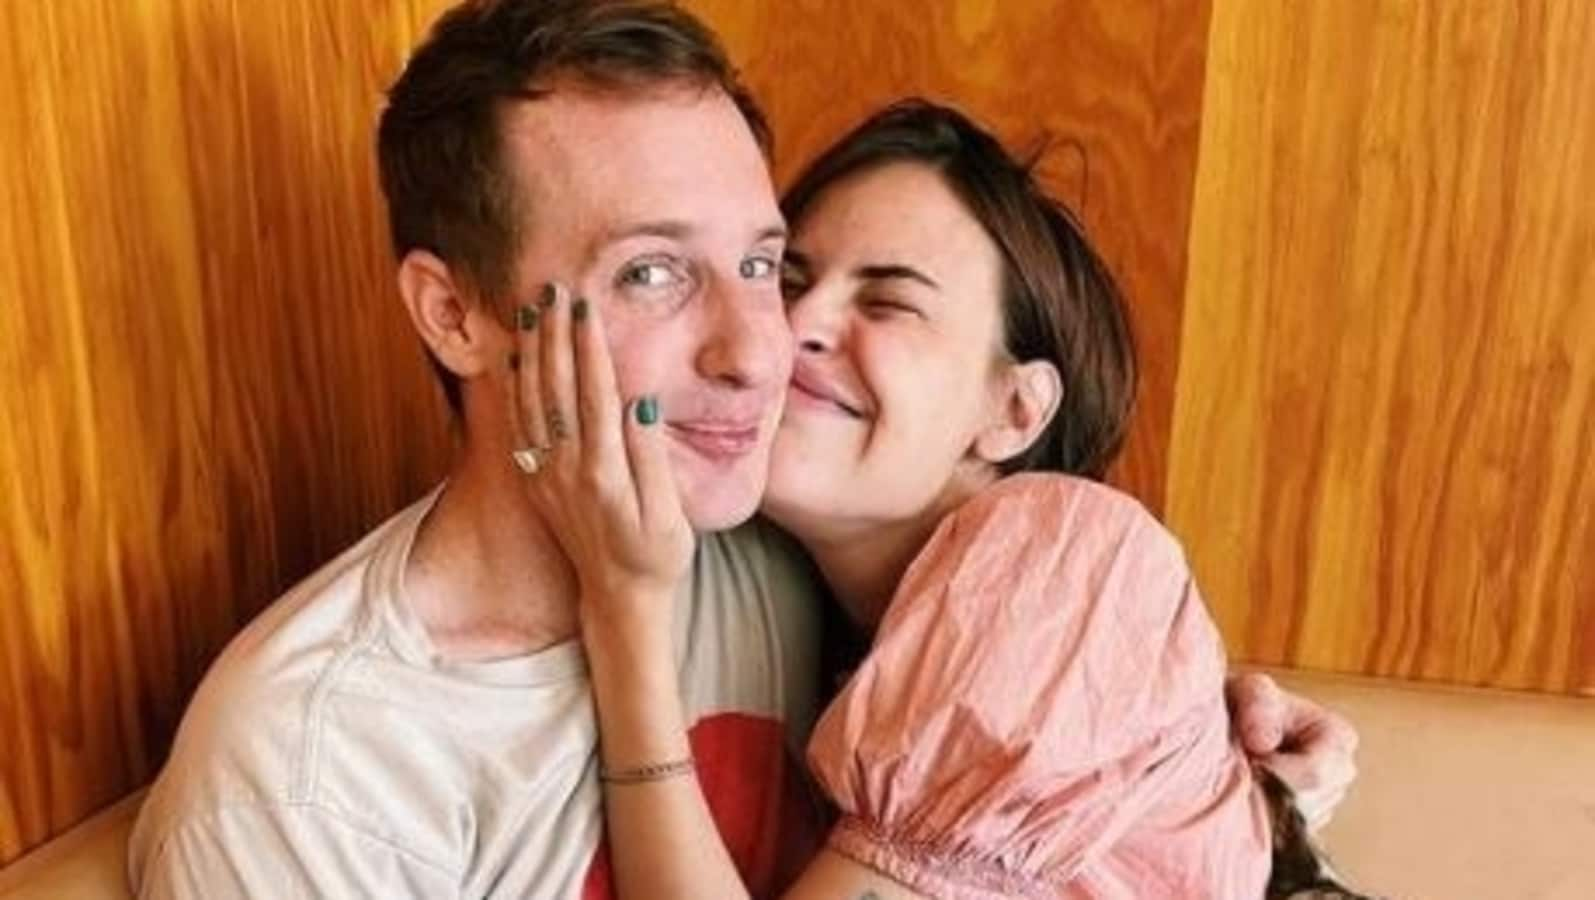 Tallulah Willis, daughter of Bruce Willis and Demi Moore, announces engagement